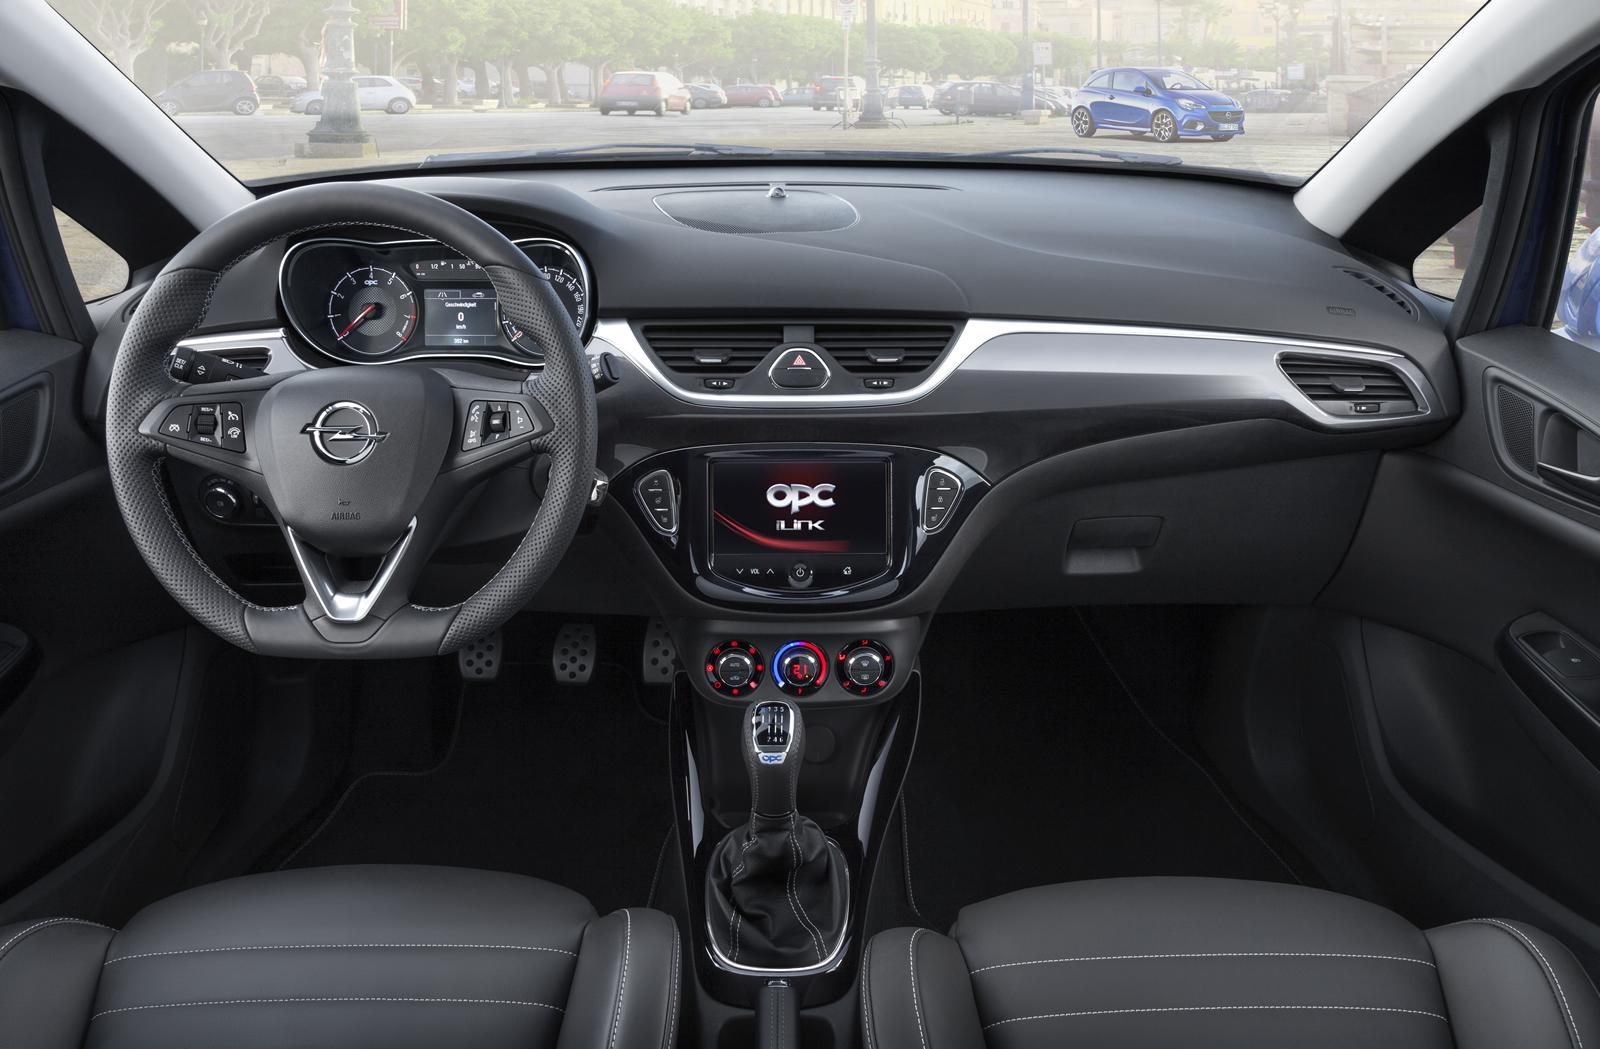 Opel Performance Sub-brand OPC Believed To Be Working On Electrified ...